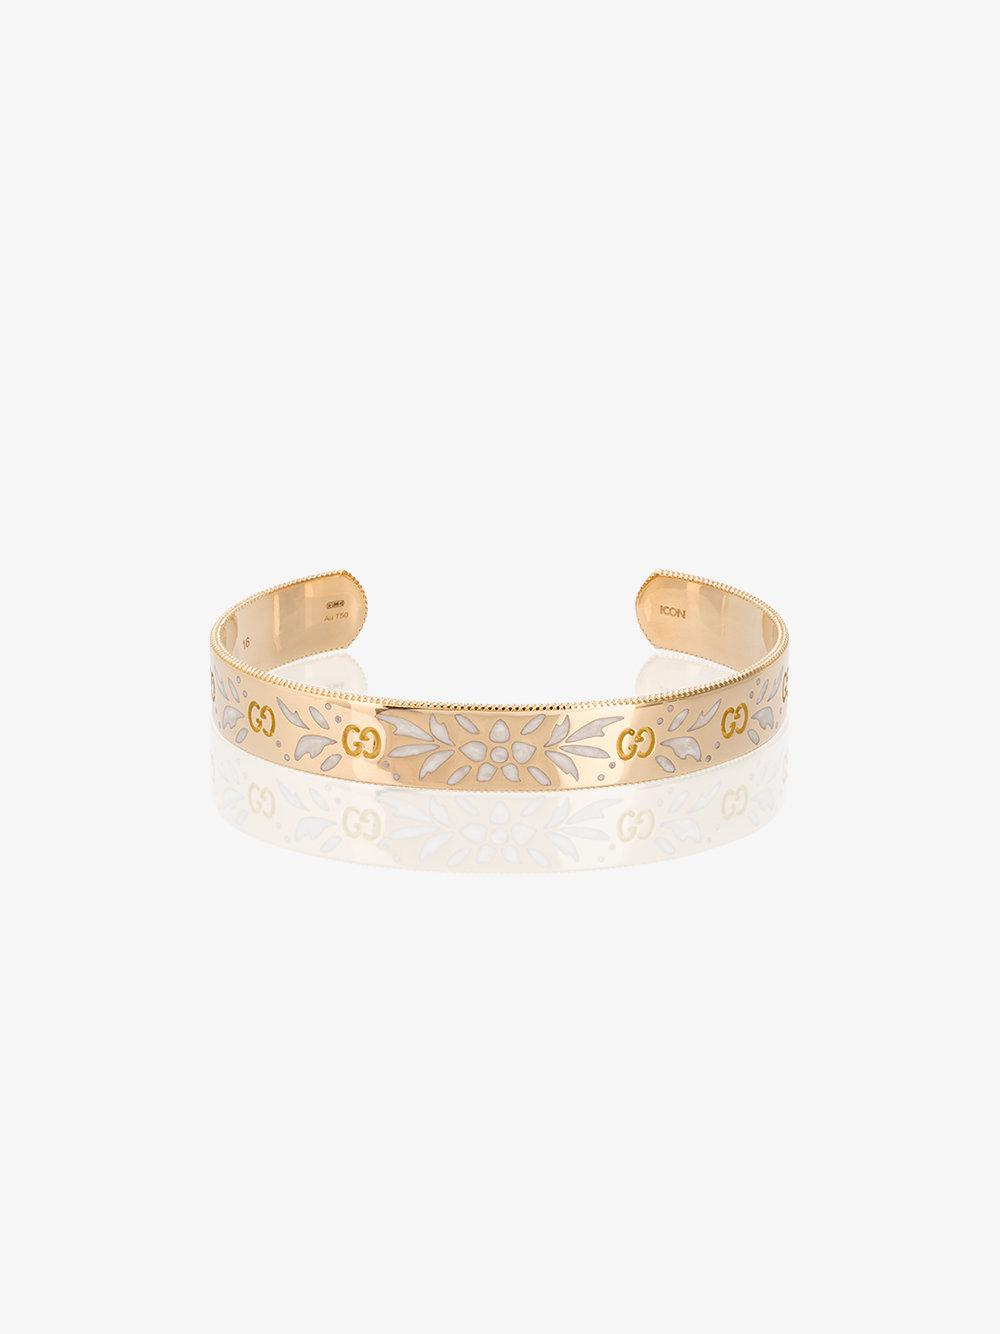 Gucci Large Icon bracelet in yellow gold - Metallic UCbuo1zmUi